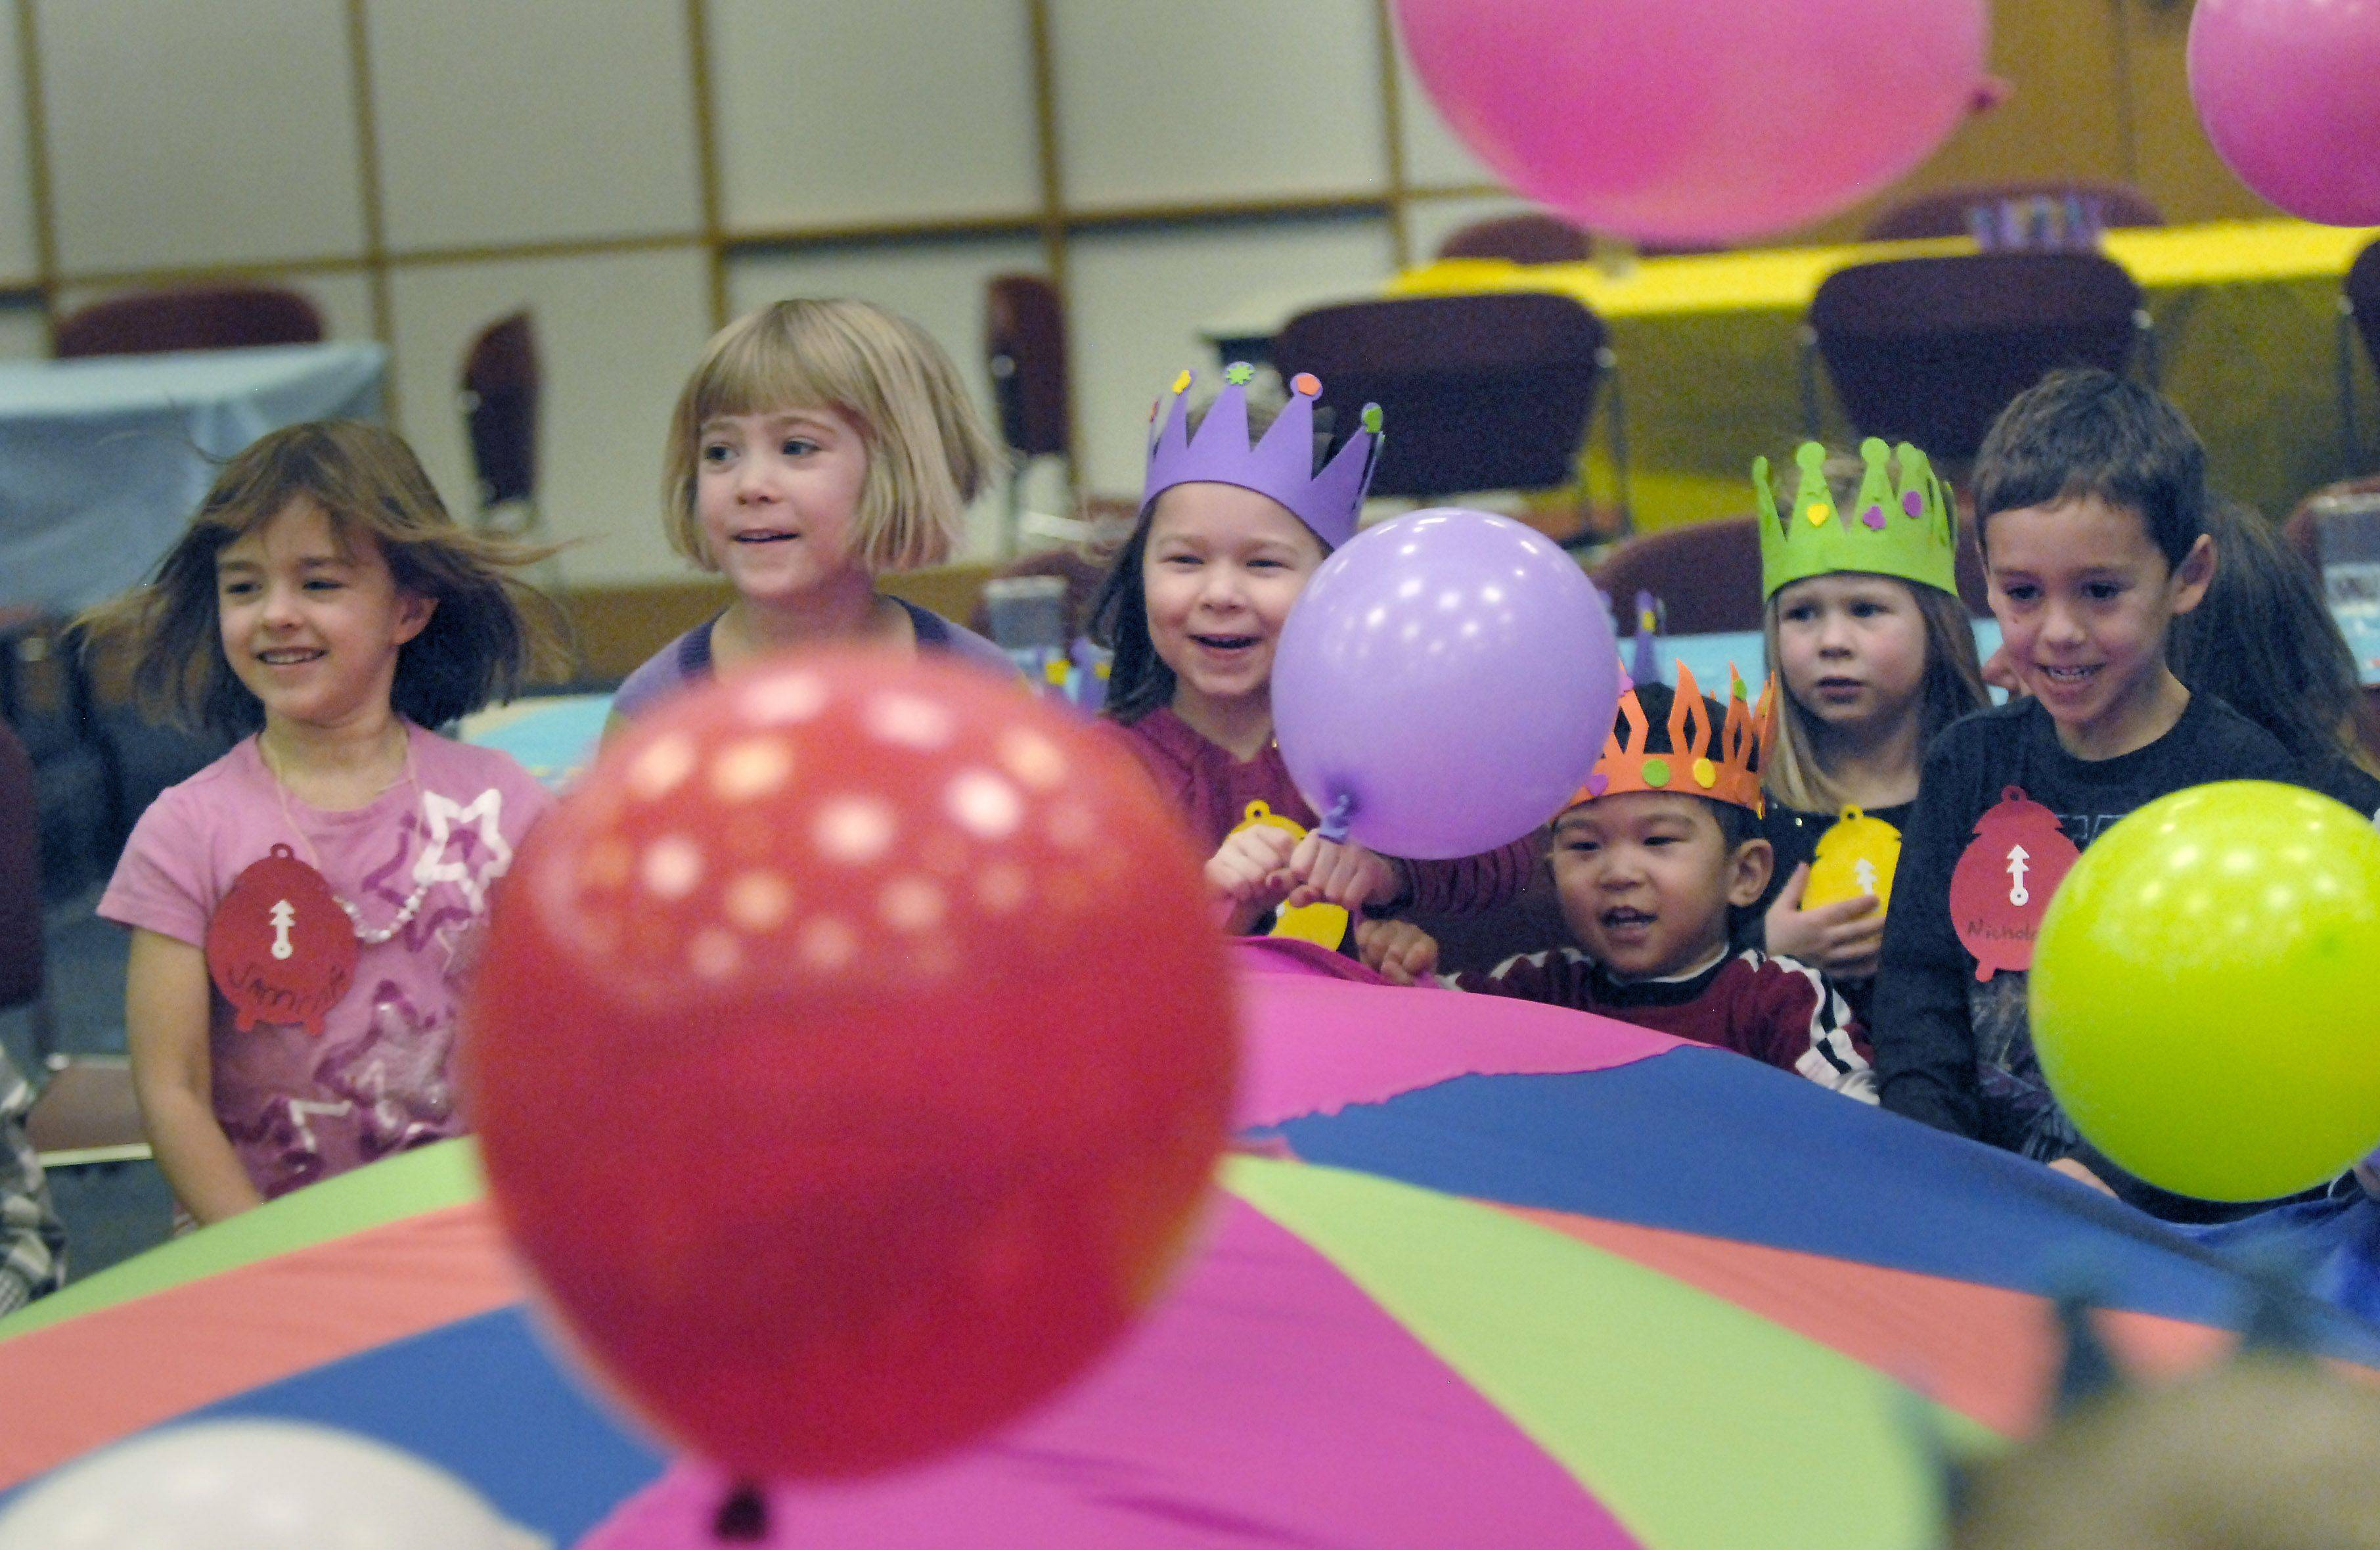 Balloons bounce away at the end of the celebration Friday during the Almost New Year's party at the Arlington Heights Memorial Library.